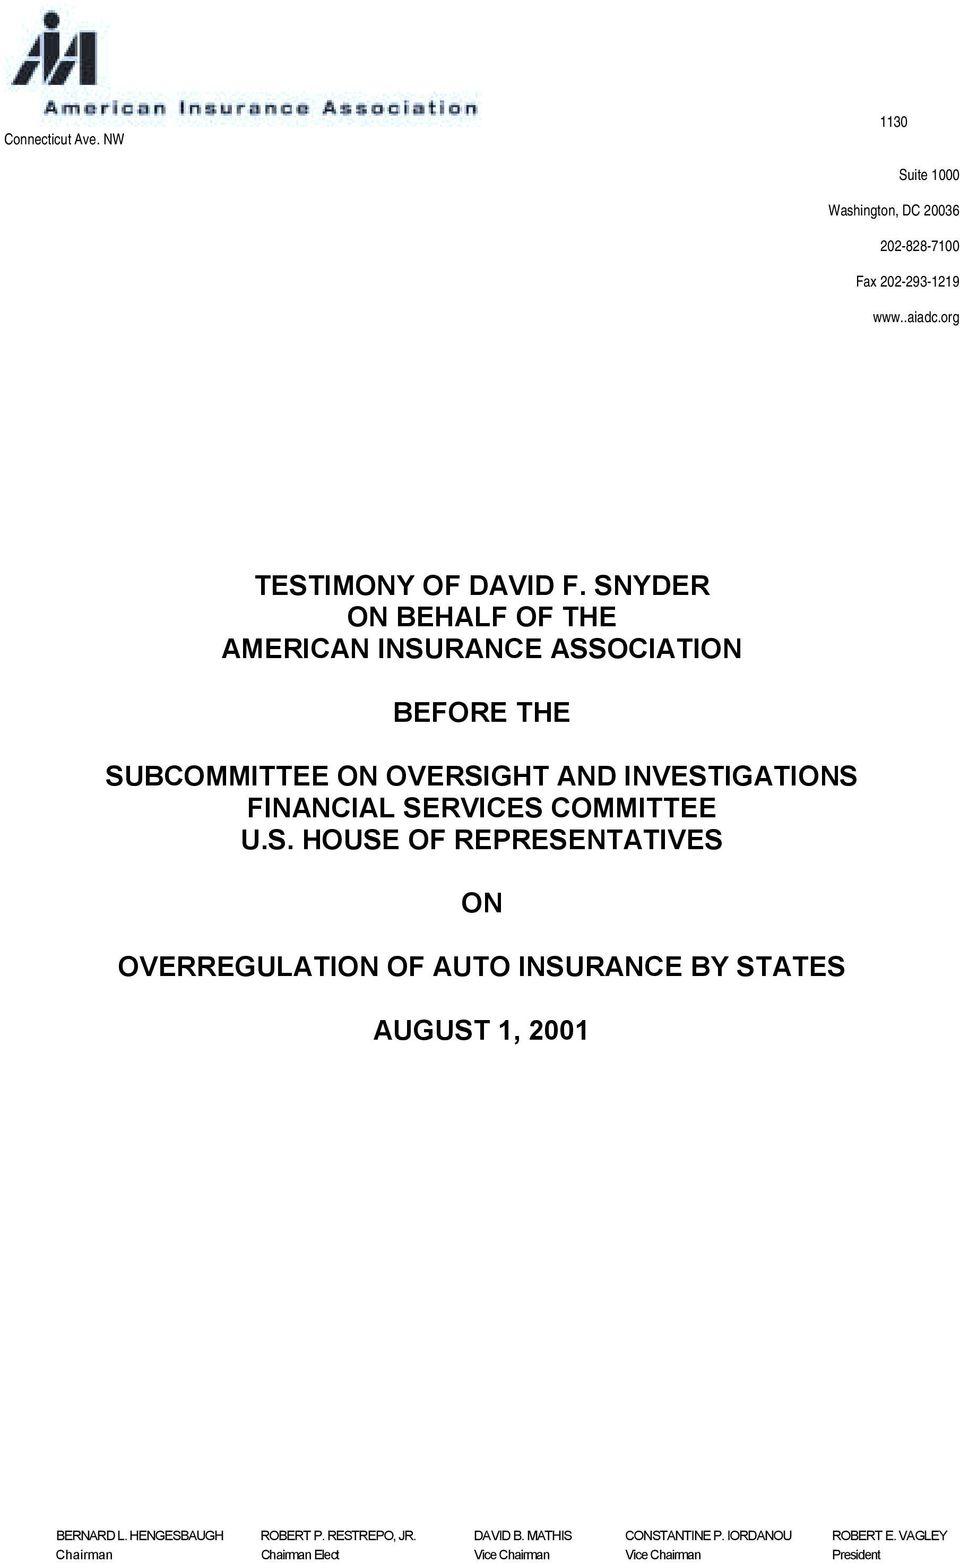 COMMITTEE U.S. HOUSE OF REPRESENTATIVES ON OVERREGULATION OF AUTO INSURANCE BY STATES AUGUST 1, 2001 BERNARD L.